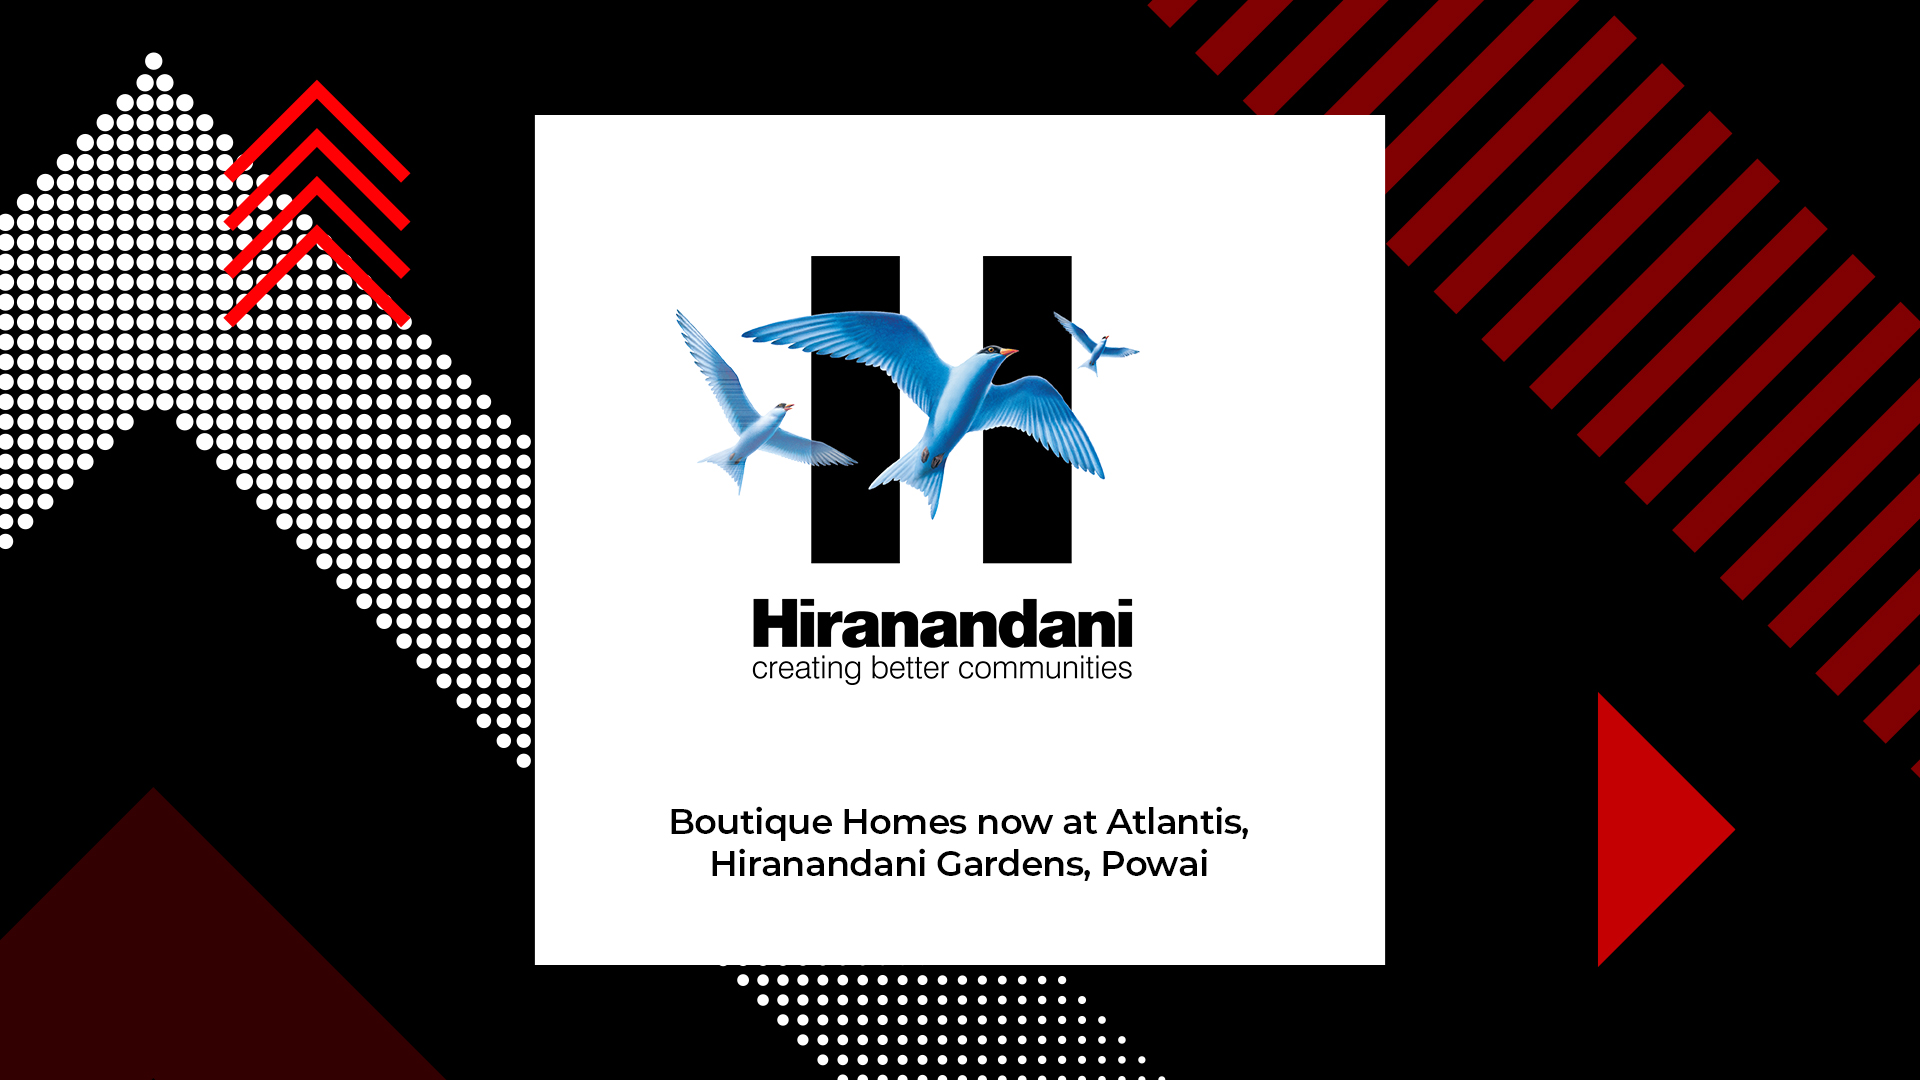 Hiranandani Gardens Offers Boutique Homes in Atlantis at Powai